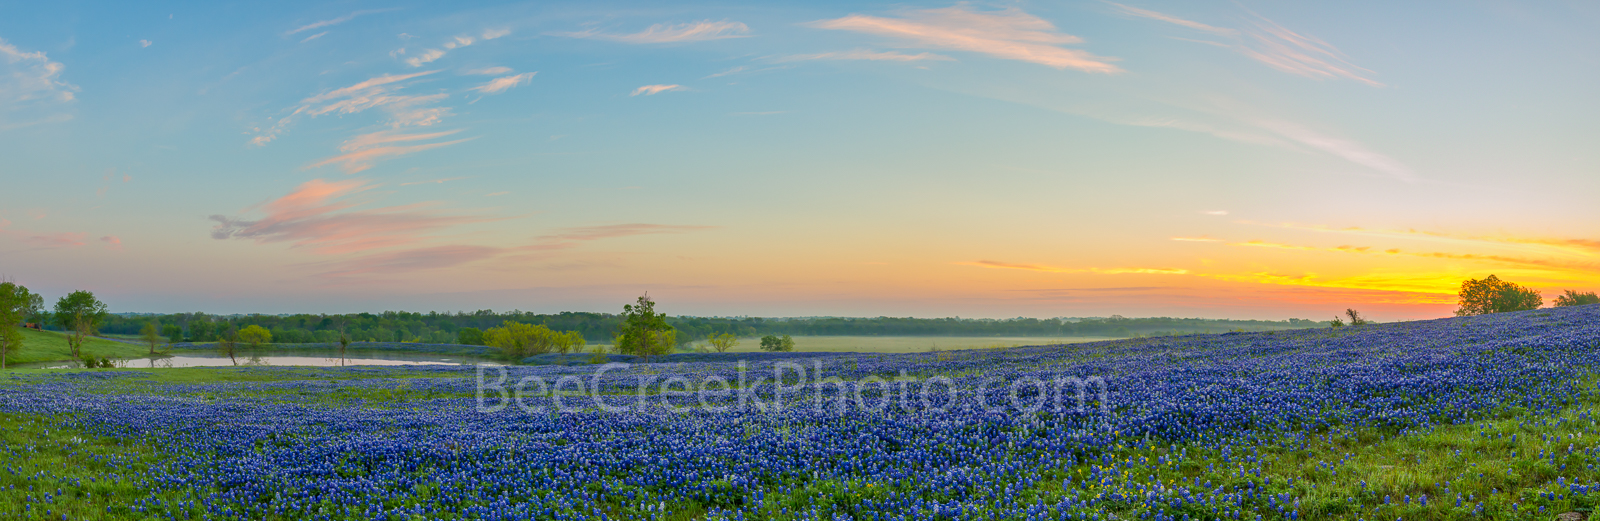 Bluebonnets, bluebonnet, blue bonnets, sunrise, ranch, texas, pano, panorama, field of bluebonnets, watering, tank, clouds, colors, Ennis, morning,, photo